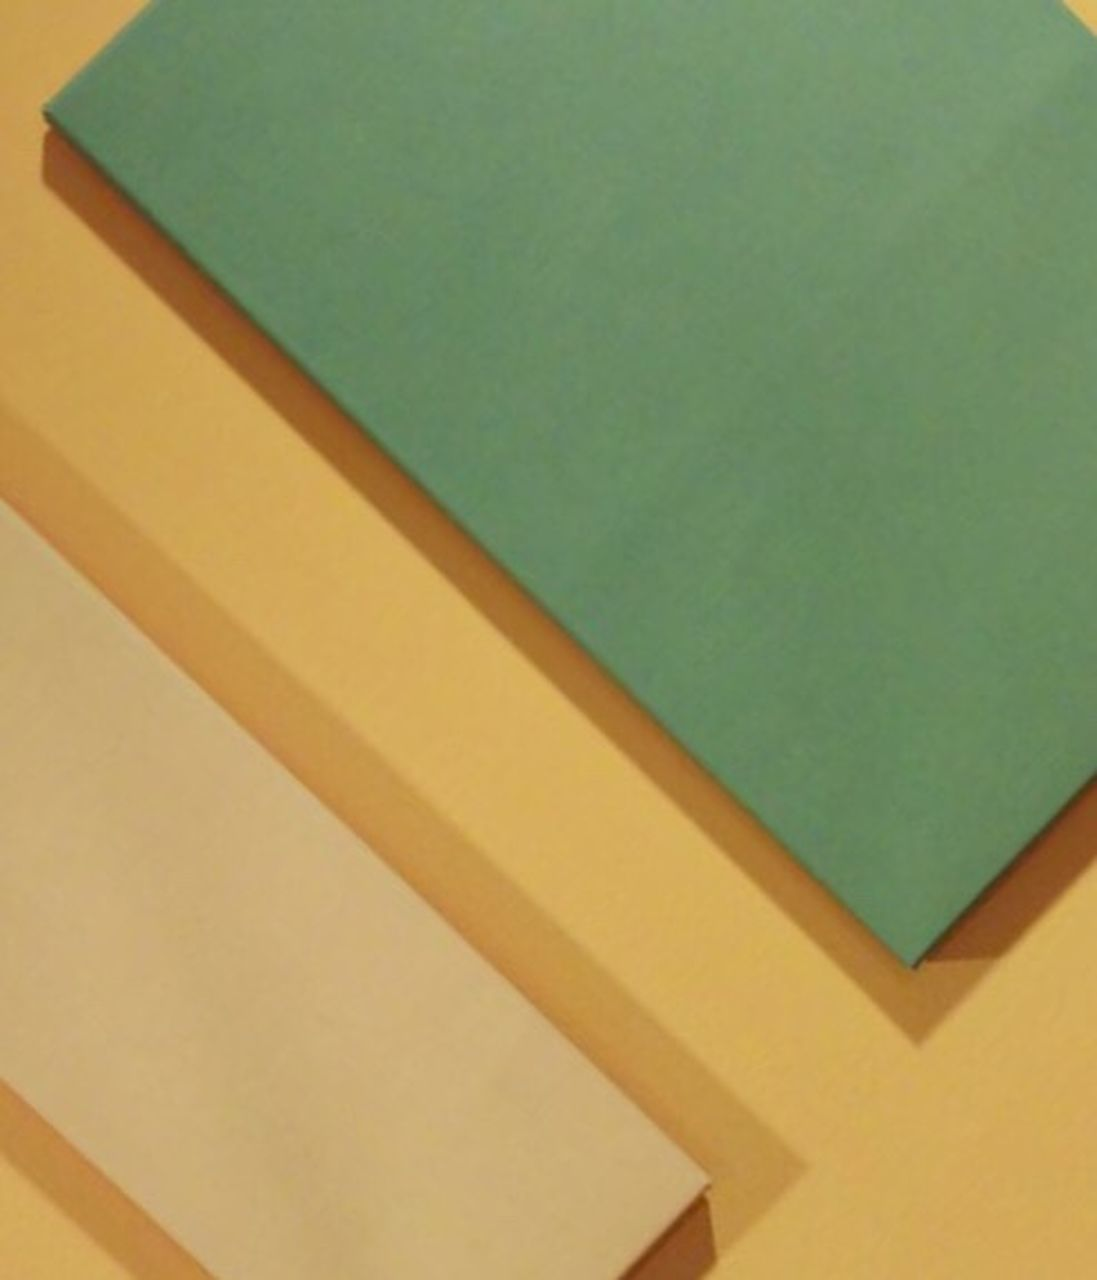 paper, no people, backgrounds, indoors, green color, textured, multi colored, day, close-up